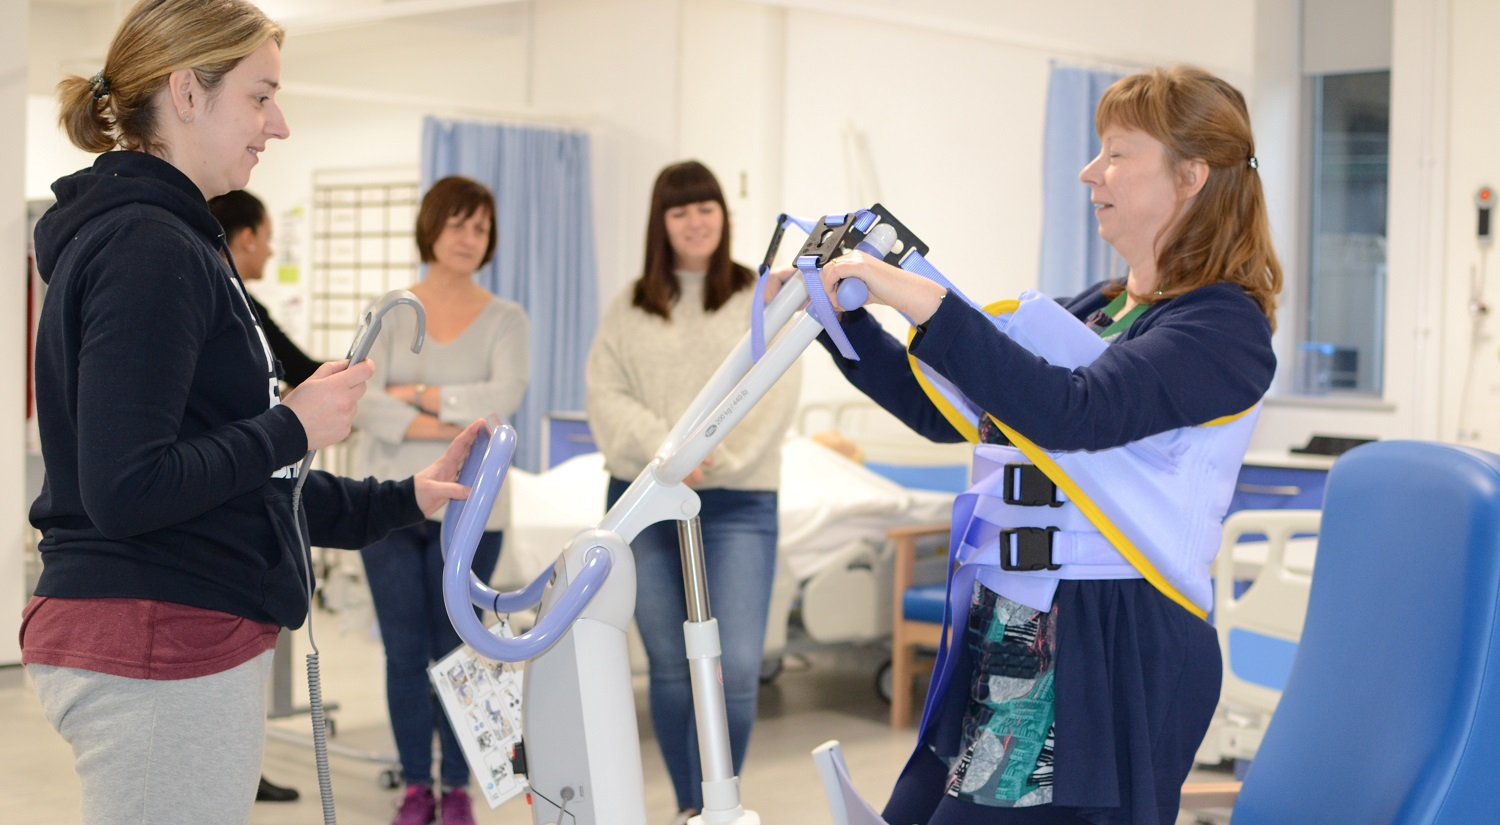 Erika Kerry from the School of Health and Social Care is standing on the left holding the control for an electronic hoist in her right hand. A mock-patient is on the right, with the hoist straps around her waist and under her arms. She is being lowered in to a blue chair. Two prospective students are standing in the background watching.